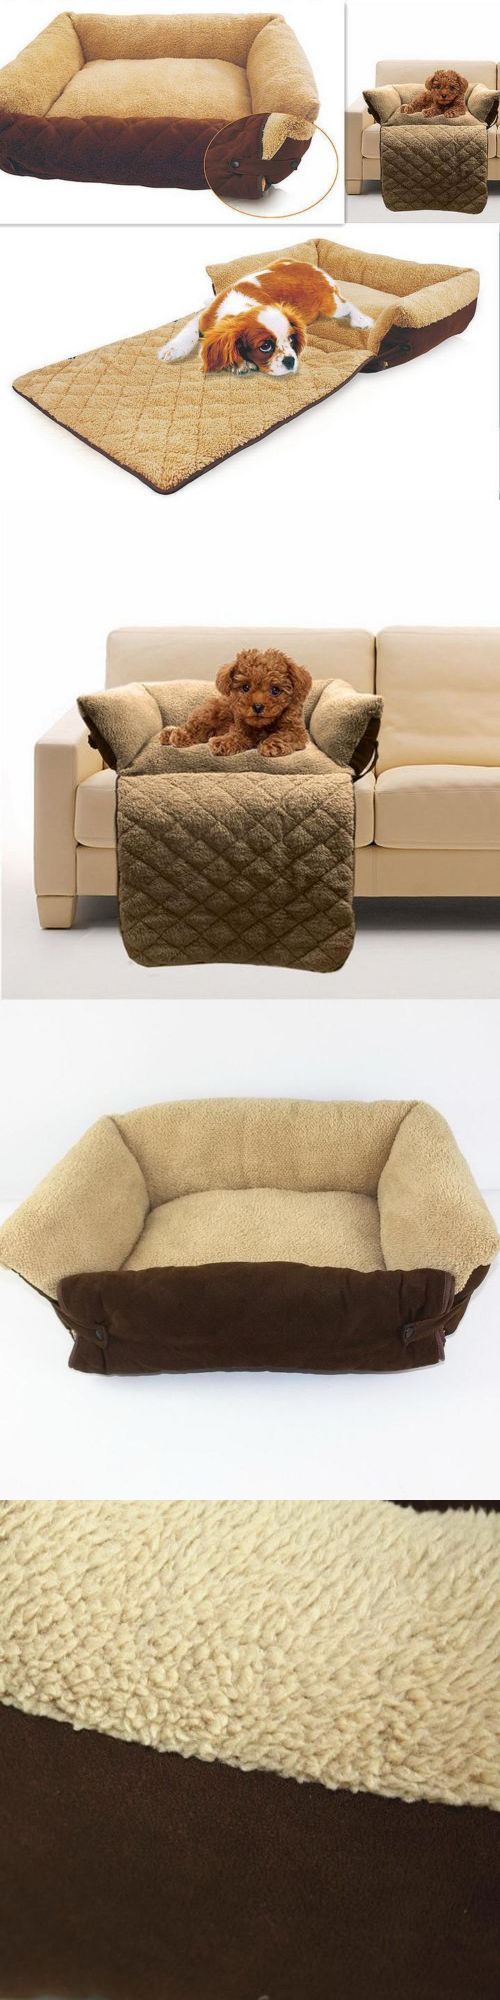 dog cat bed soft warm pet cushion puppy sofa co exclusively on rh pinterest com